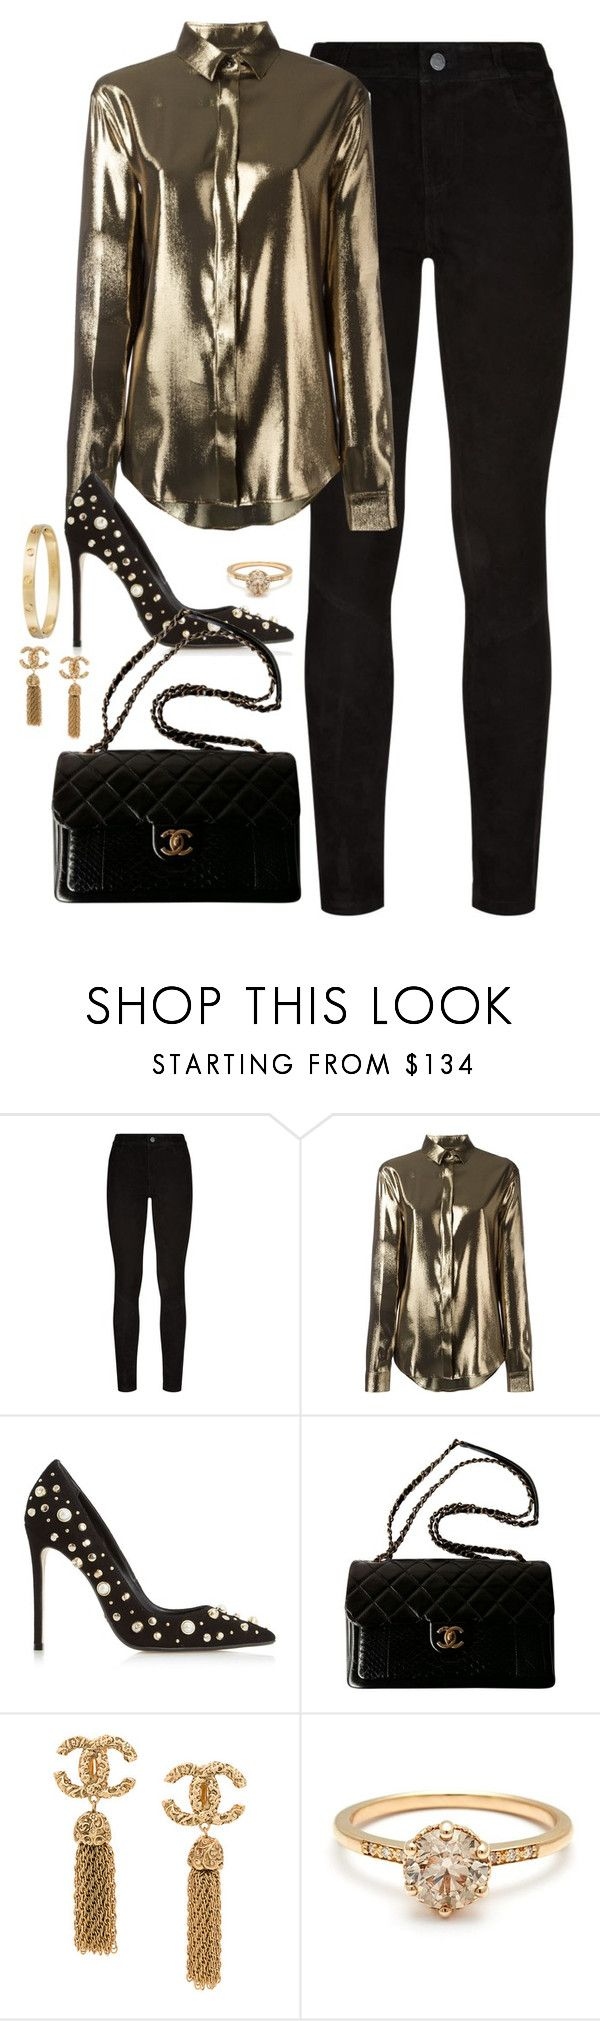 """Untitled #4545"" by magsmccray ❤ liked on Polyvore featuring Paige Denim, Yves Saint Laurent, Dune Black, Chanel and Cartier"